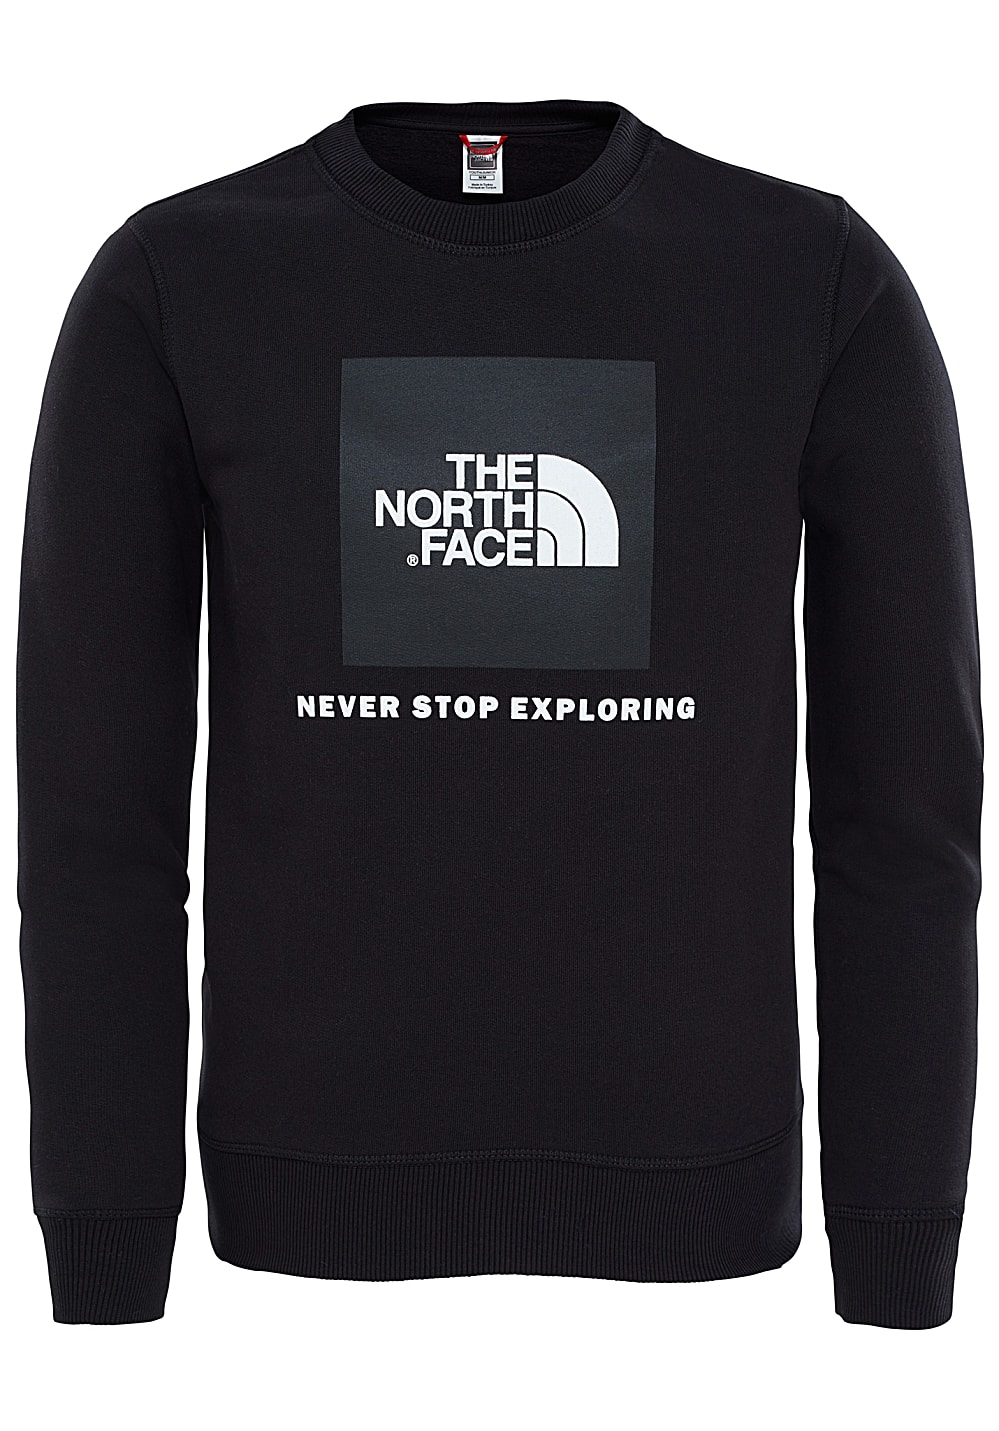 The North Face Box Crew Sweatshirt - Schwarz